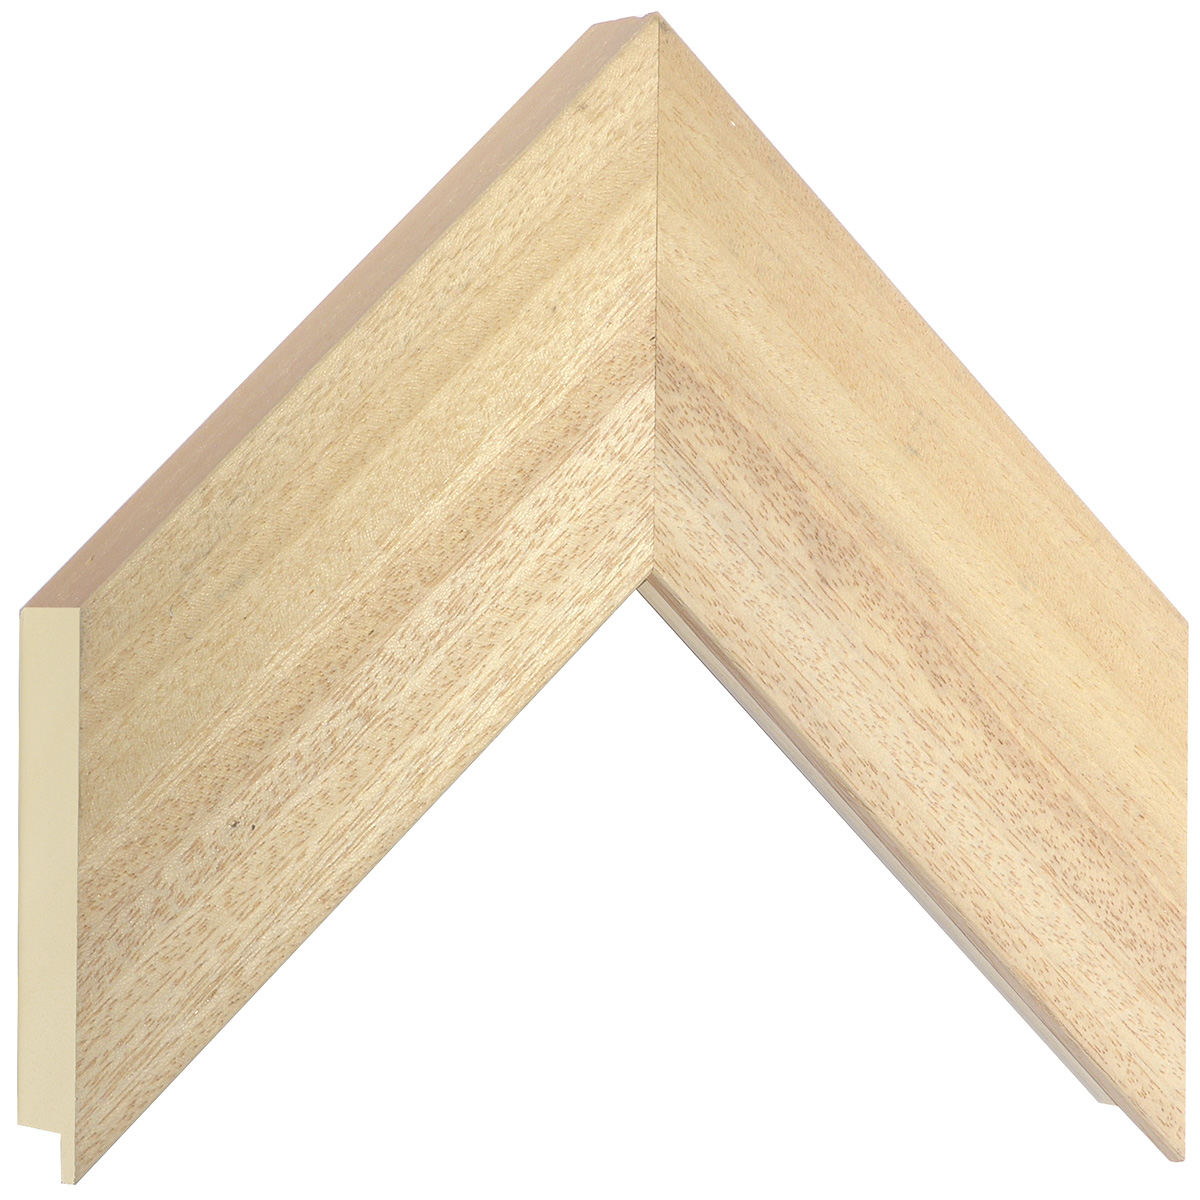 Moulding ayous, width 70mm, height 32mm, bare timber